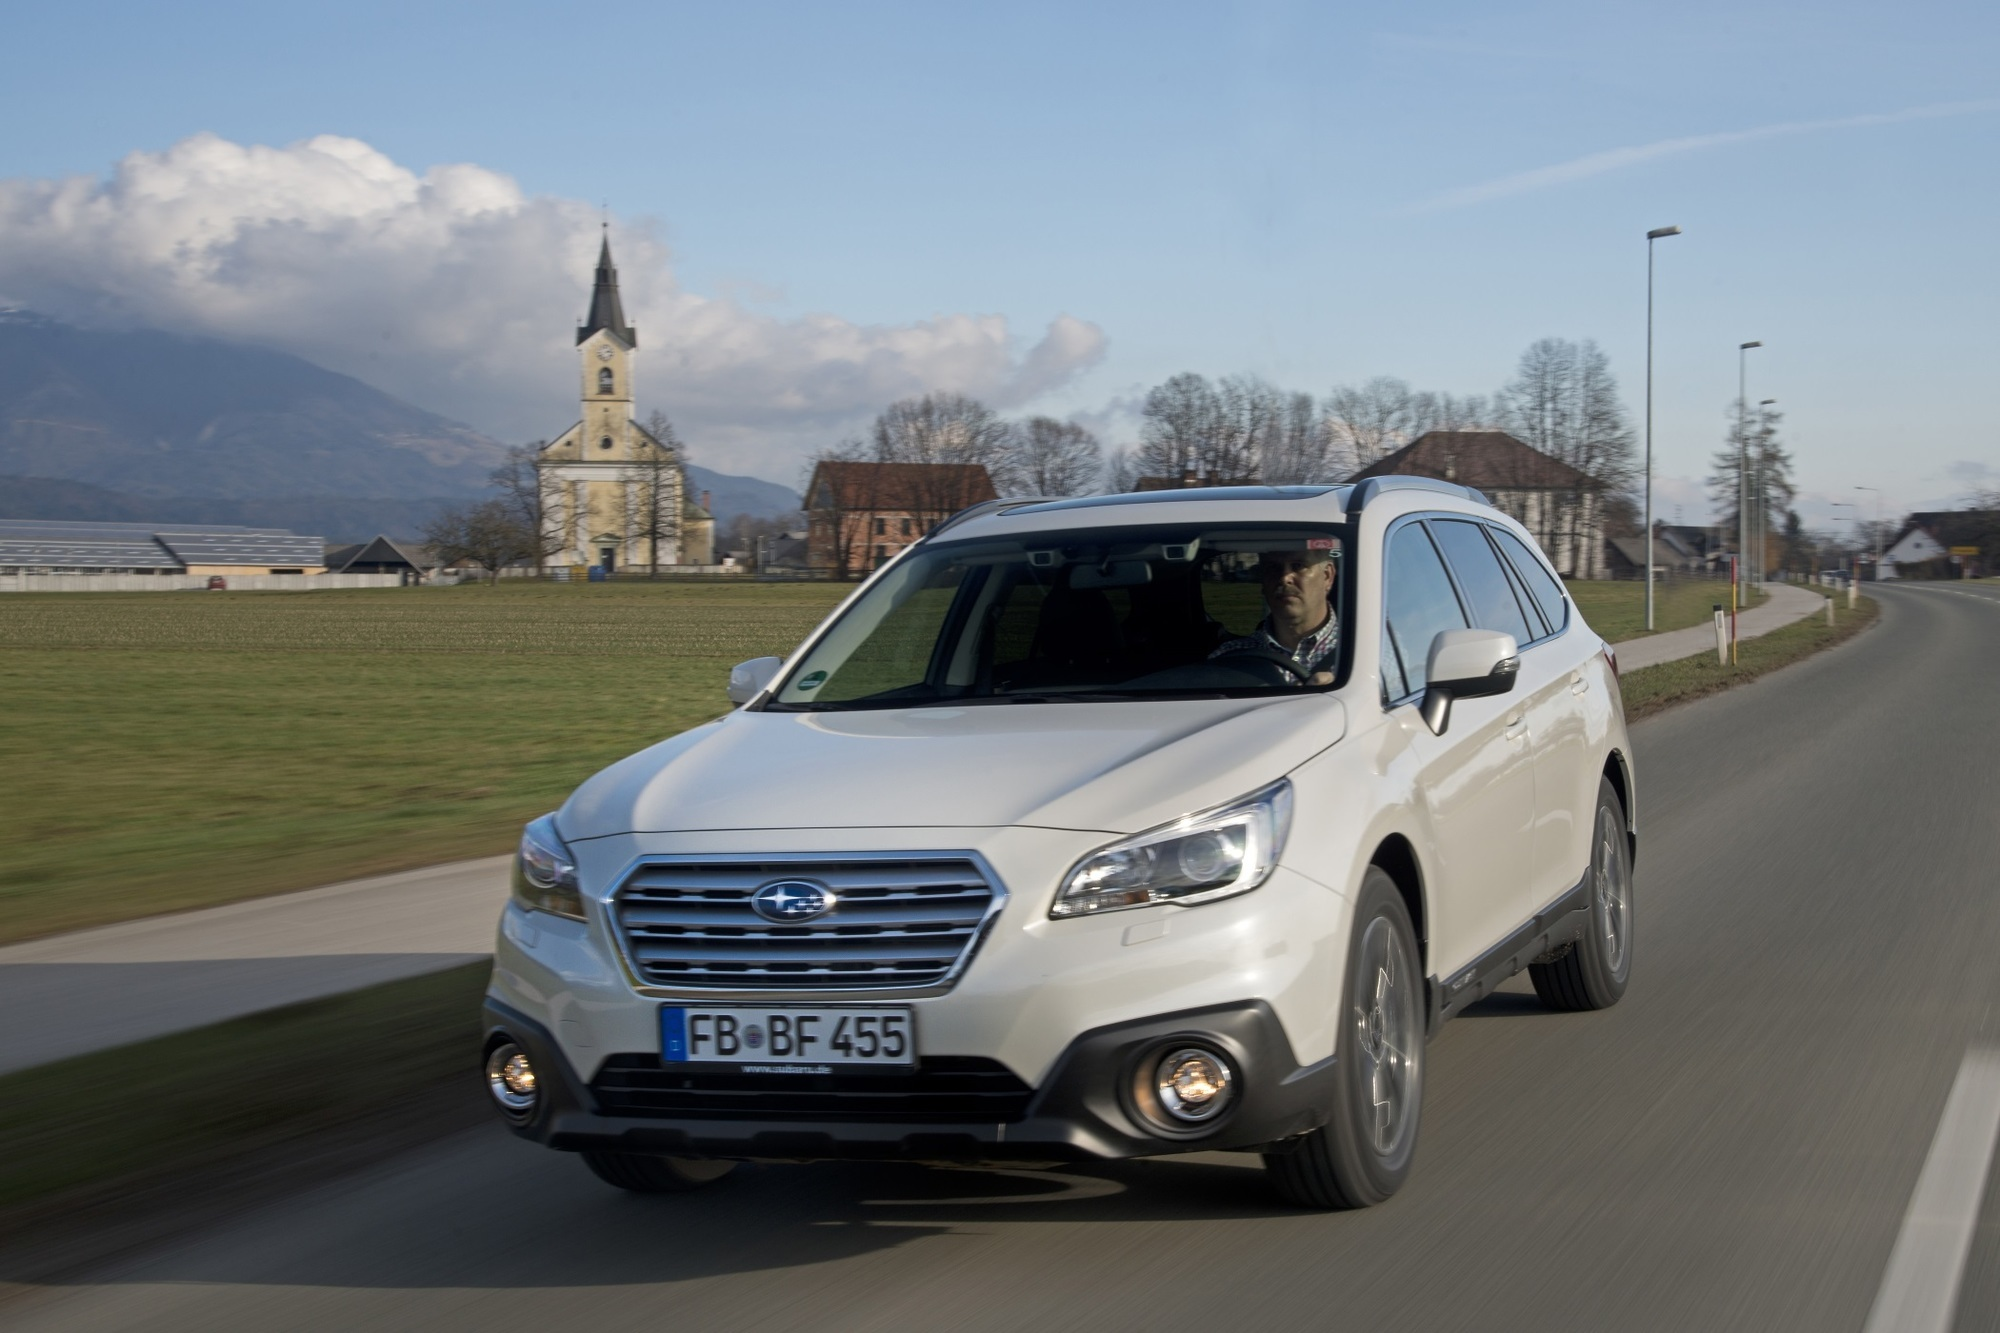 Test: Subaru Outback - Gut Ding braucht Weile